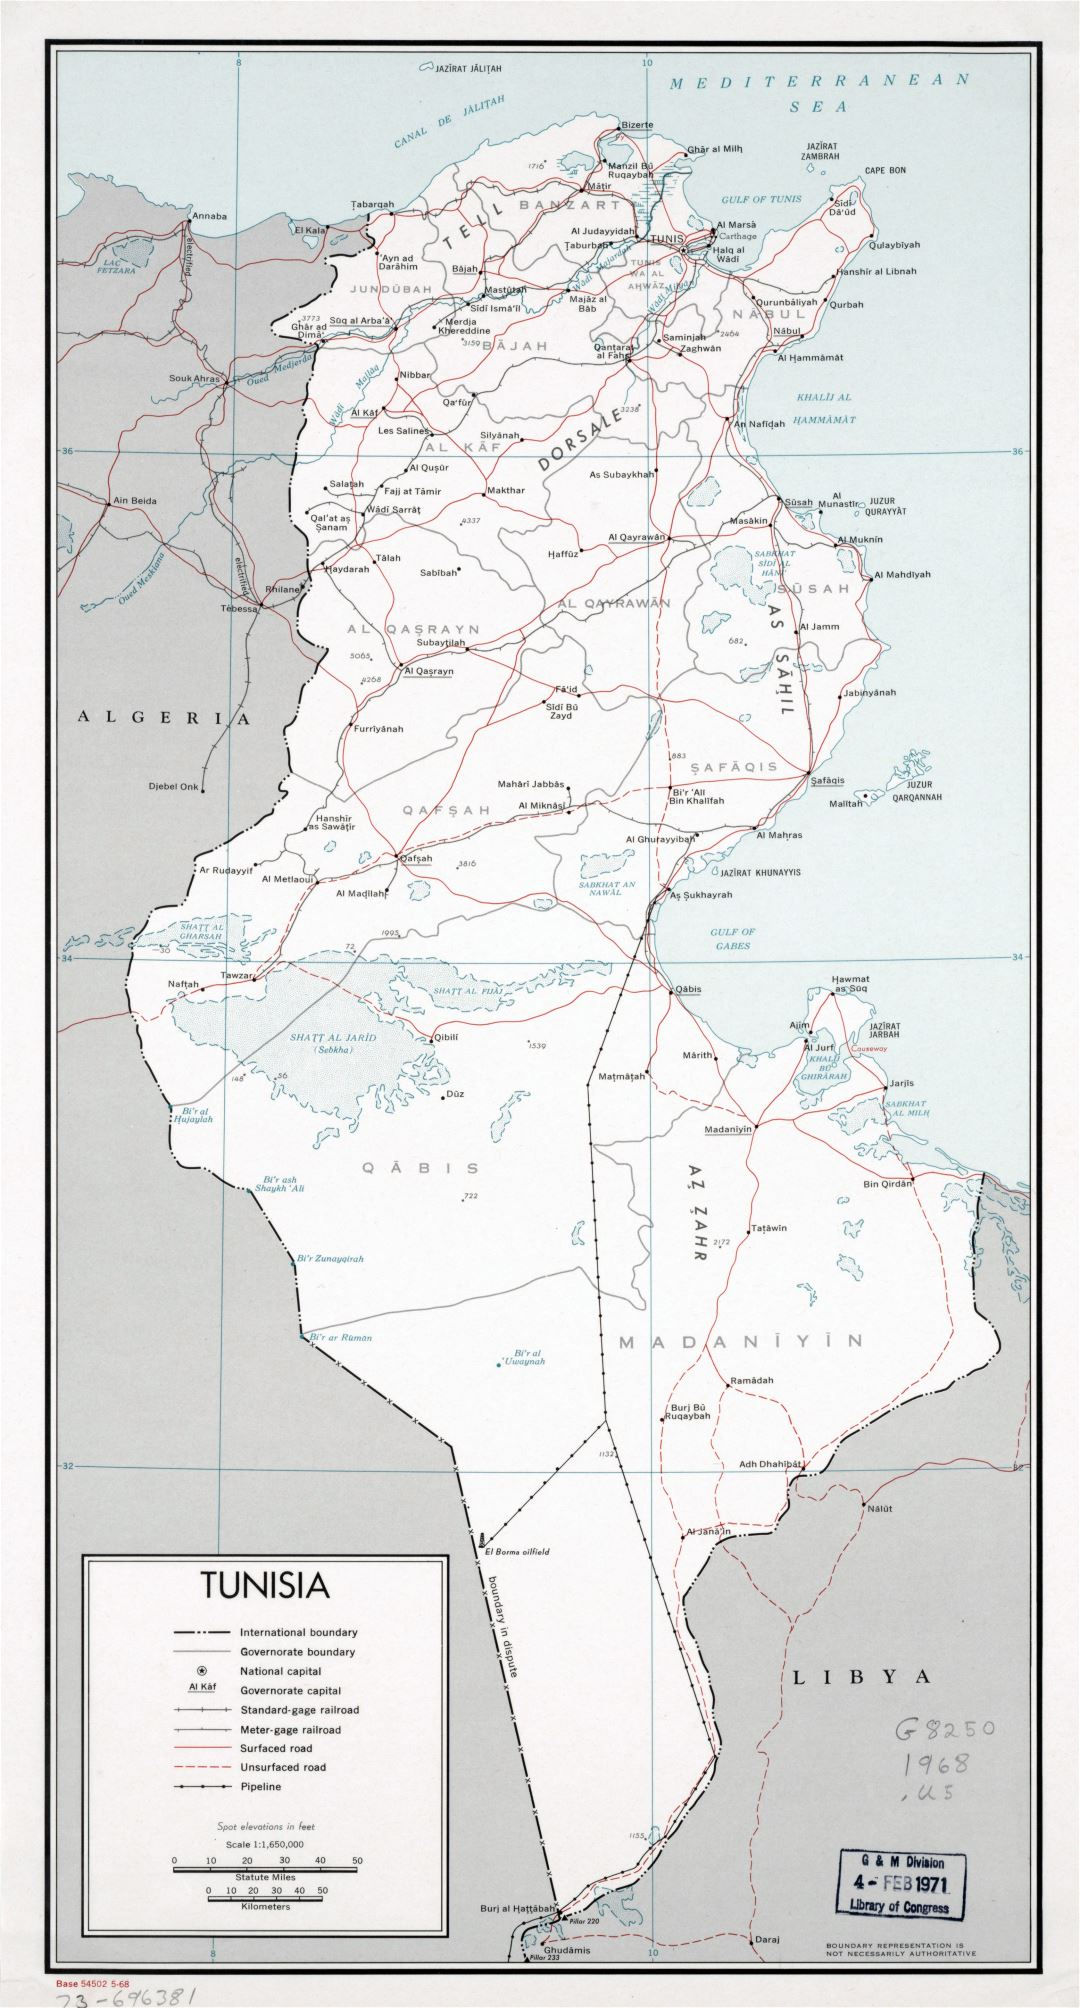 Large scale political and administrative map of Tunisia with roads, railroads, pipelines and major cities - 1968